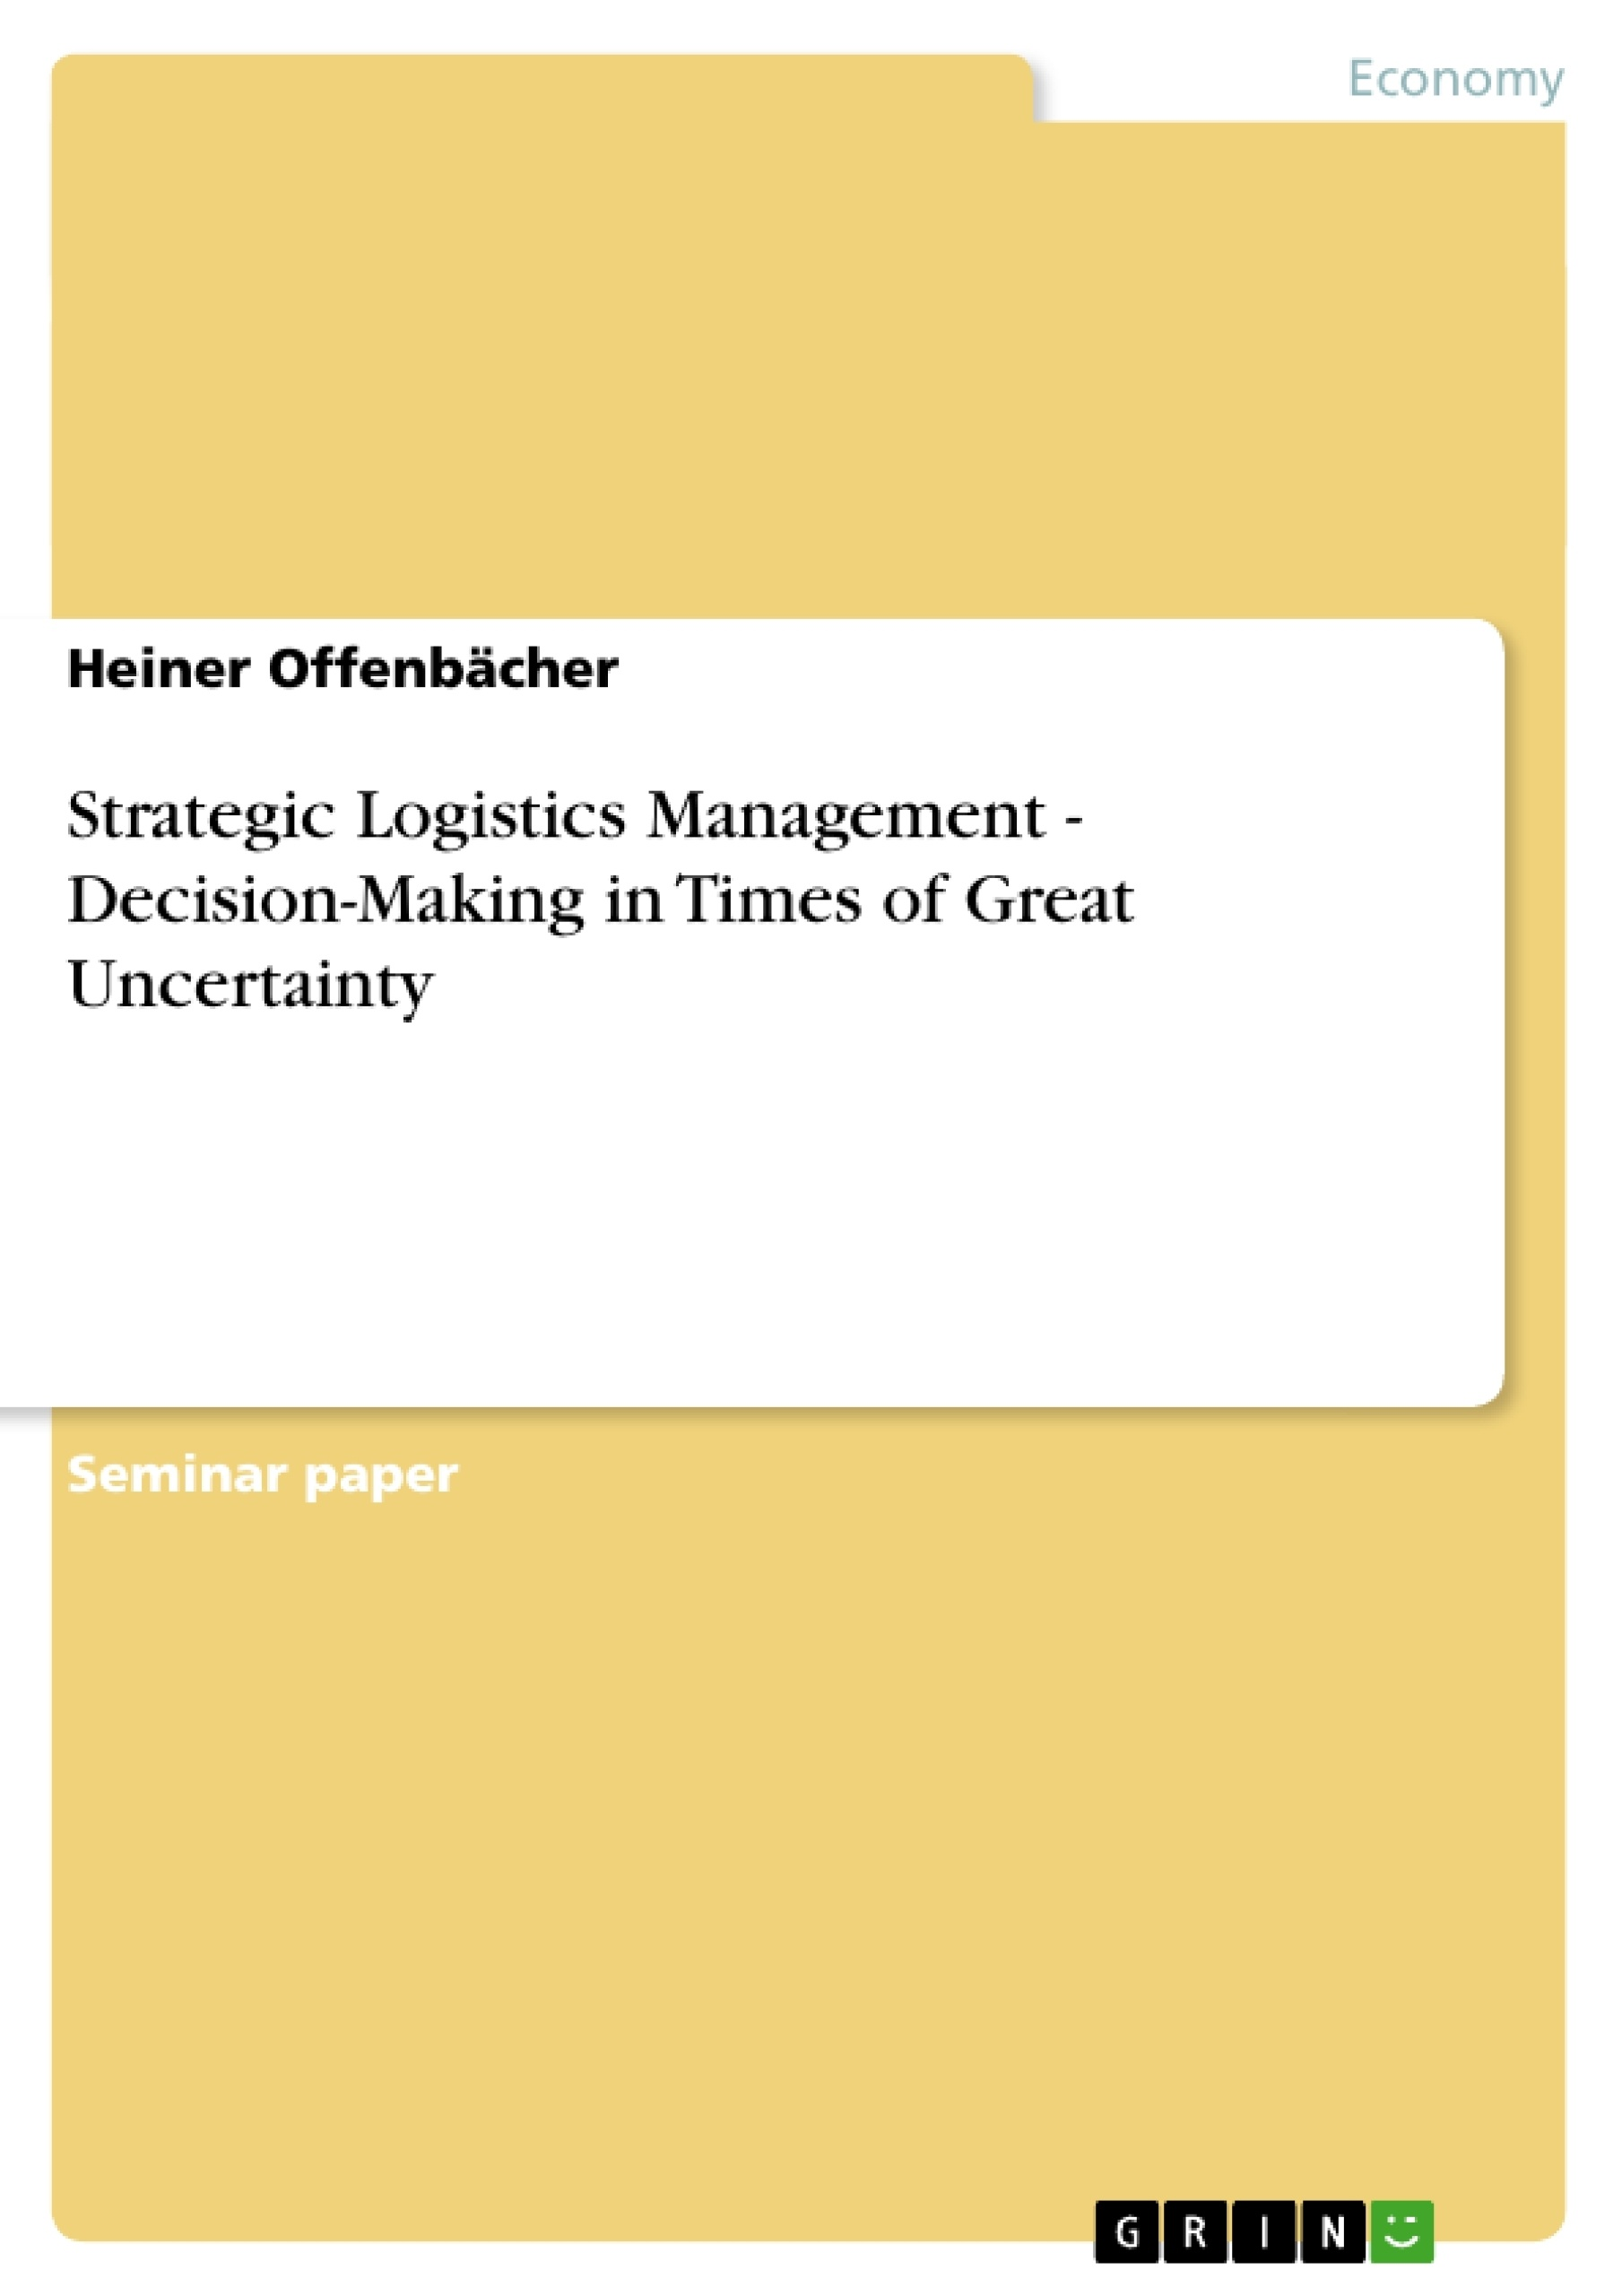 Title: Strategic Logistics Management - Decision-Making in Times of Great Uncertainty